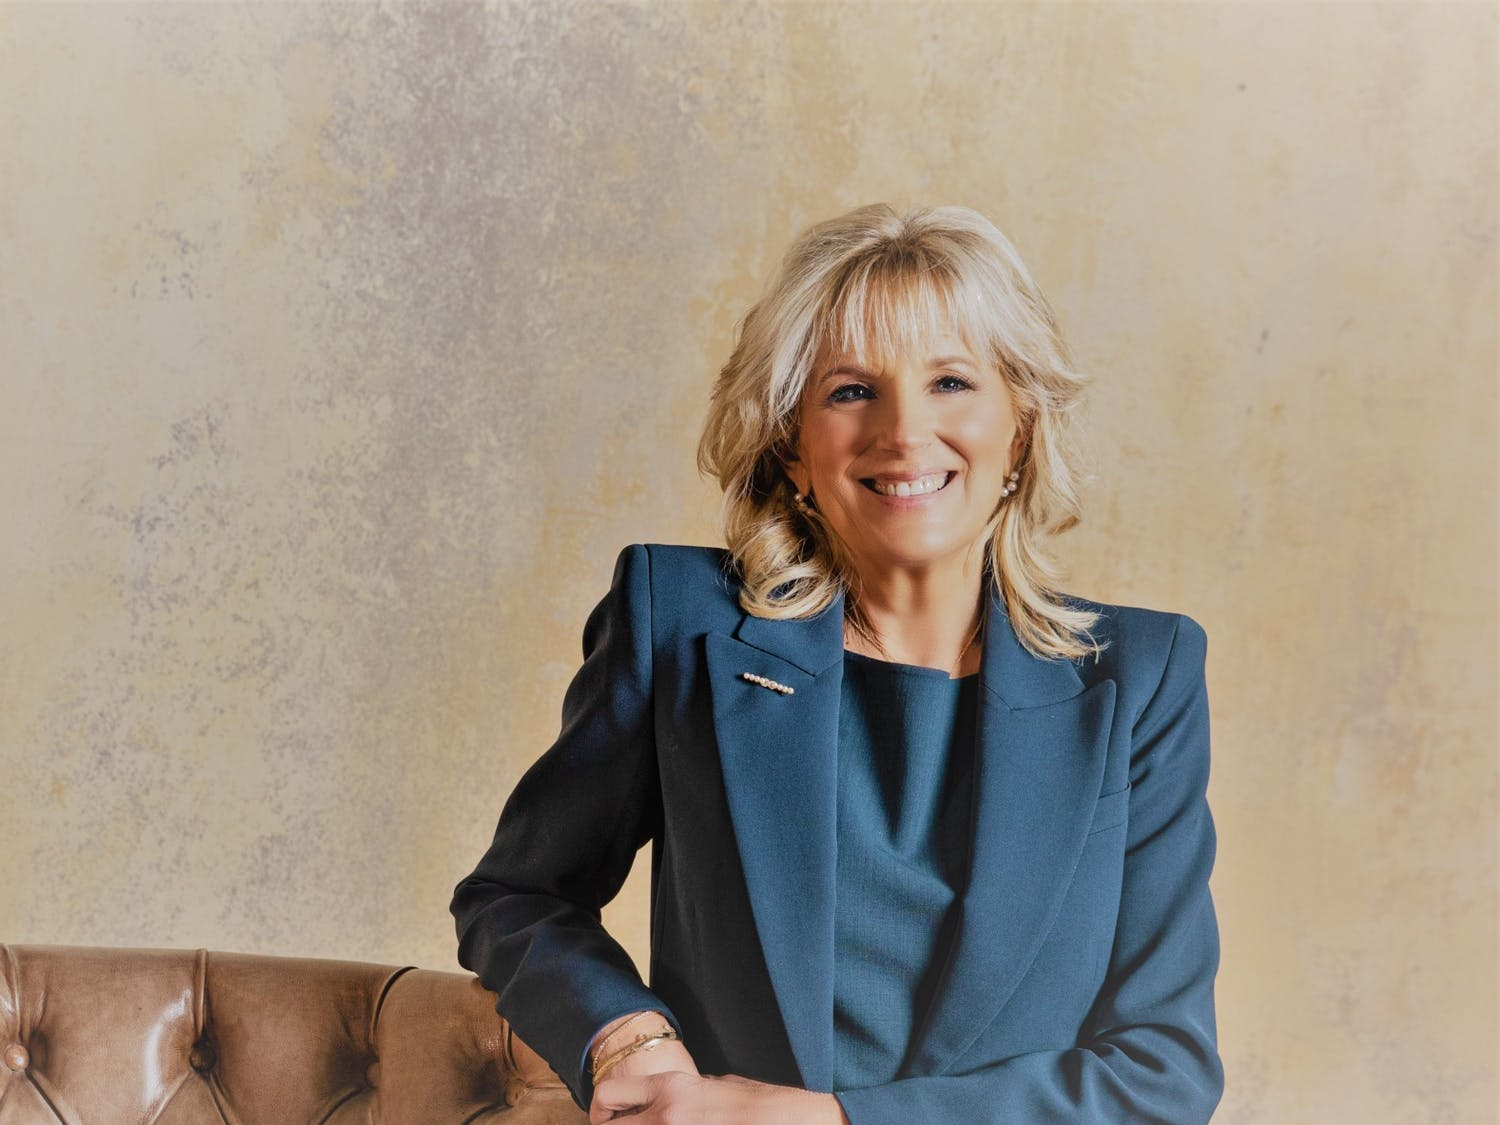 Dr Biden is excited to bring new life to the First Lady role.